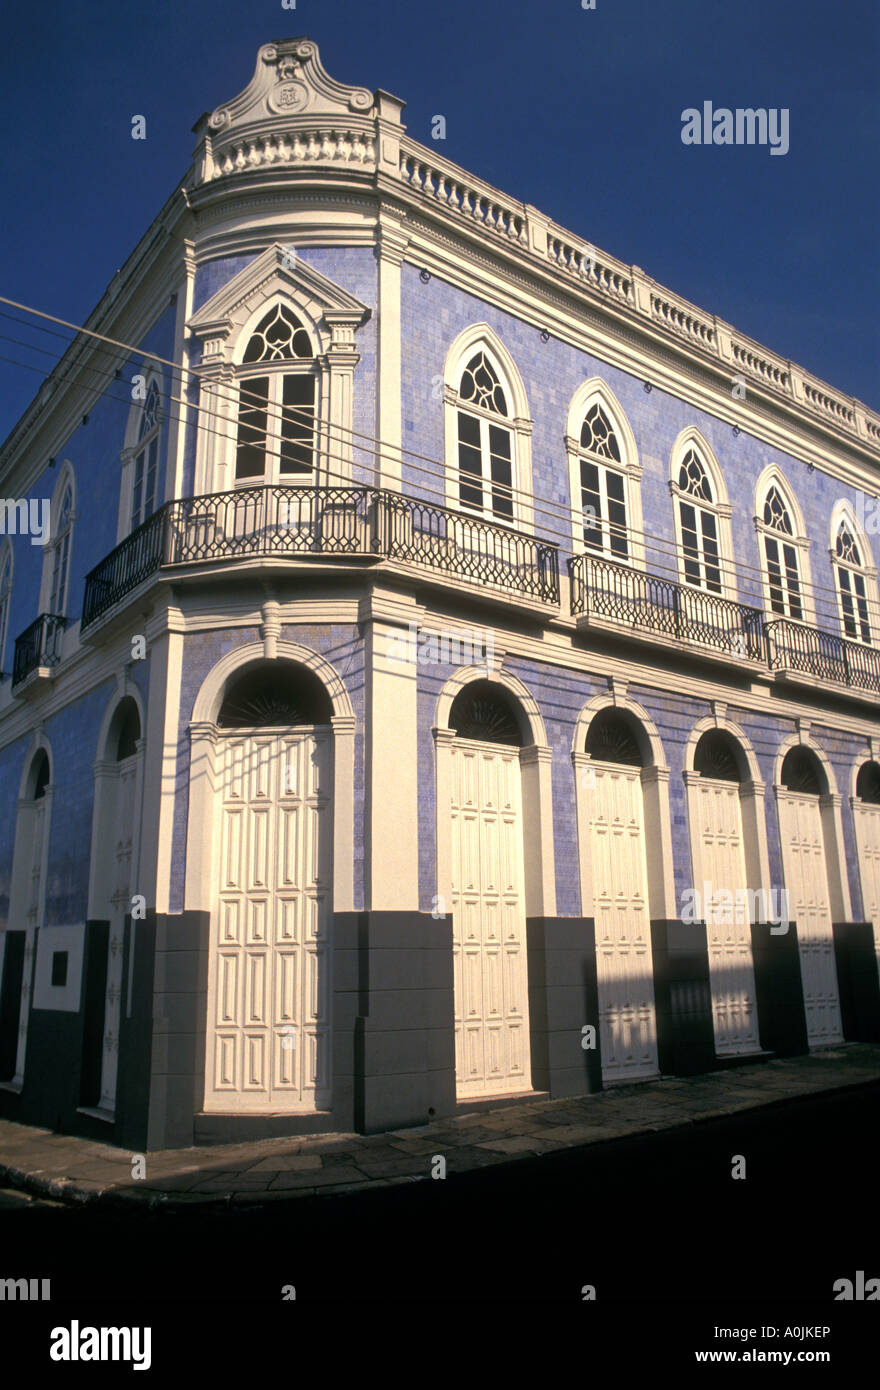 colonial-style architecture, building with decorative tiles in the capital city of  Manaus, Amazonas State, Brazil, - Stock Image